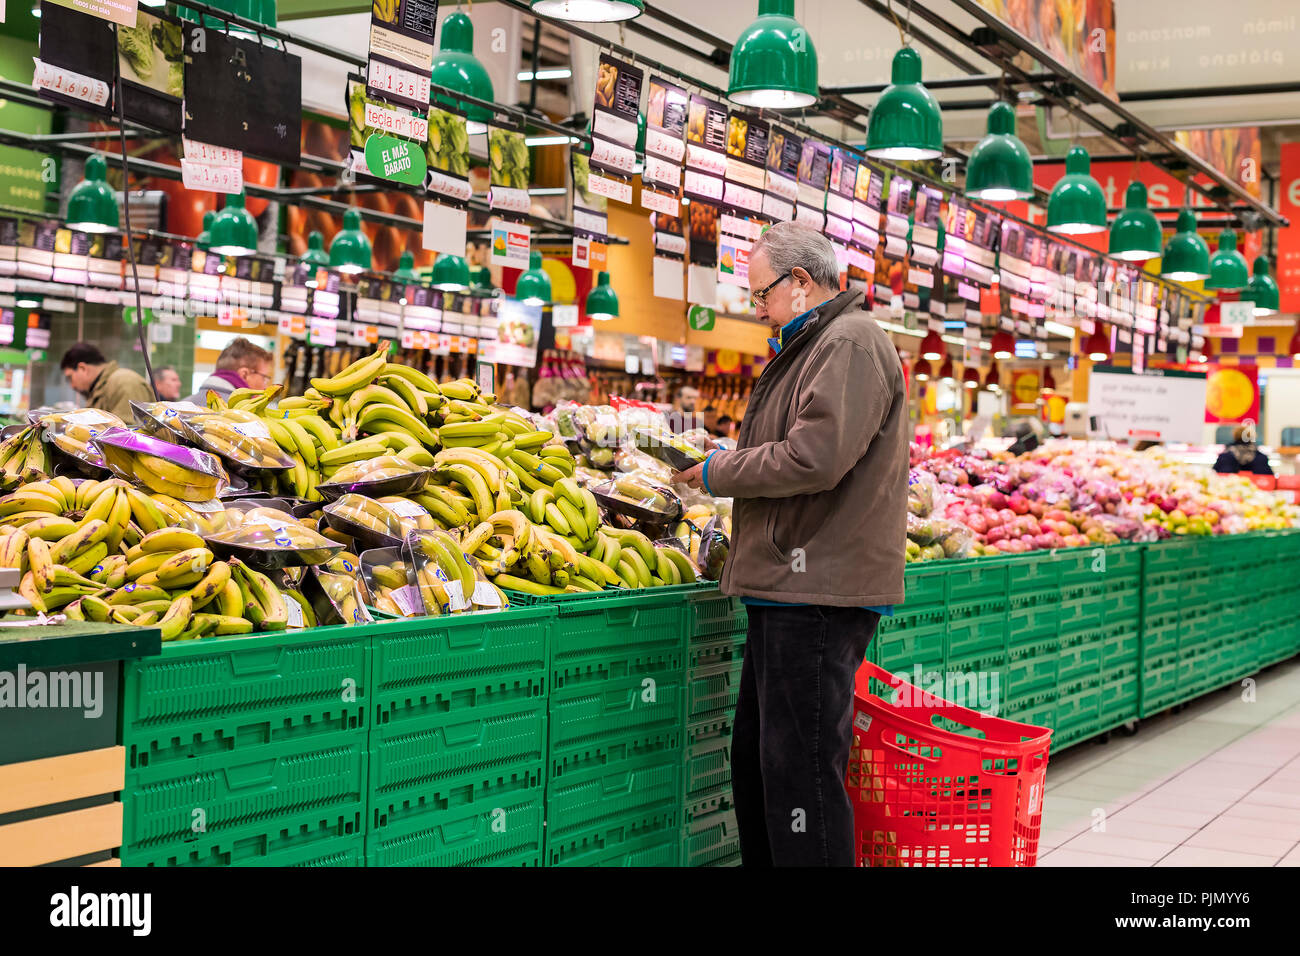 MADRID, SPAIN - 26 MARCH, 2018: Large food supermarket with customers and products and staff. Stock Photo